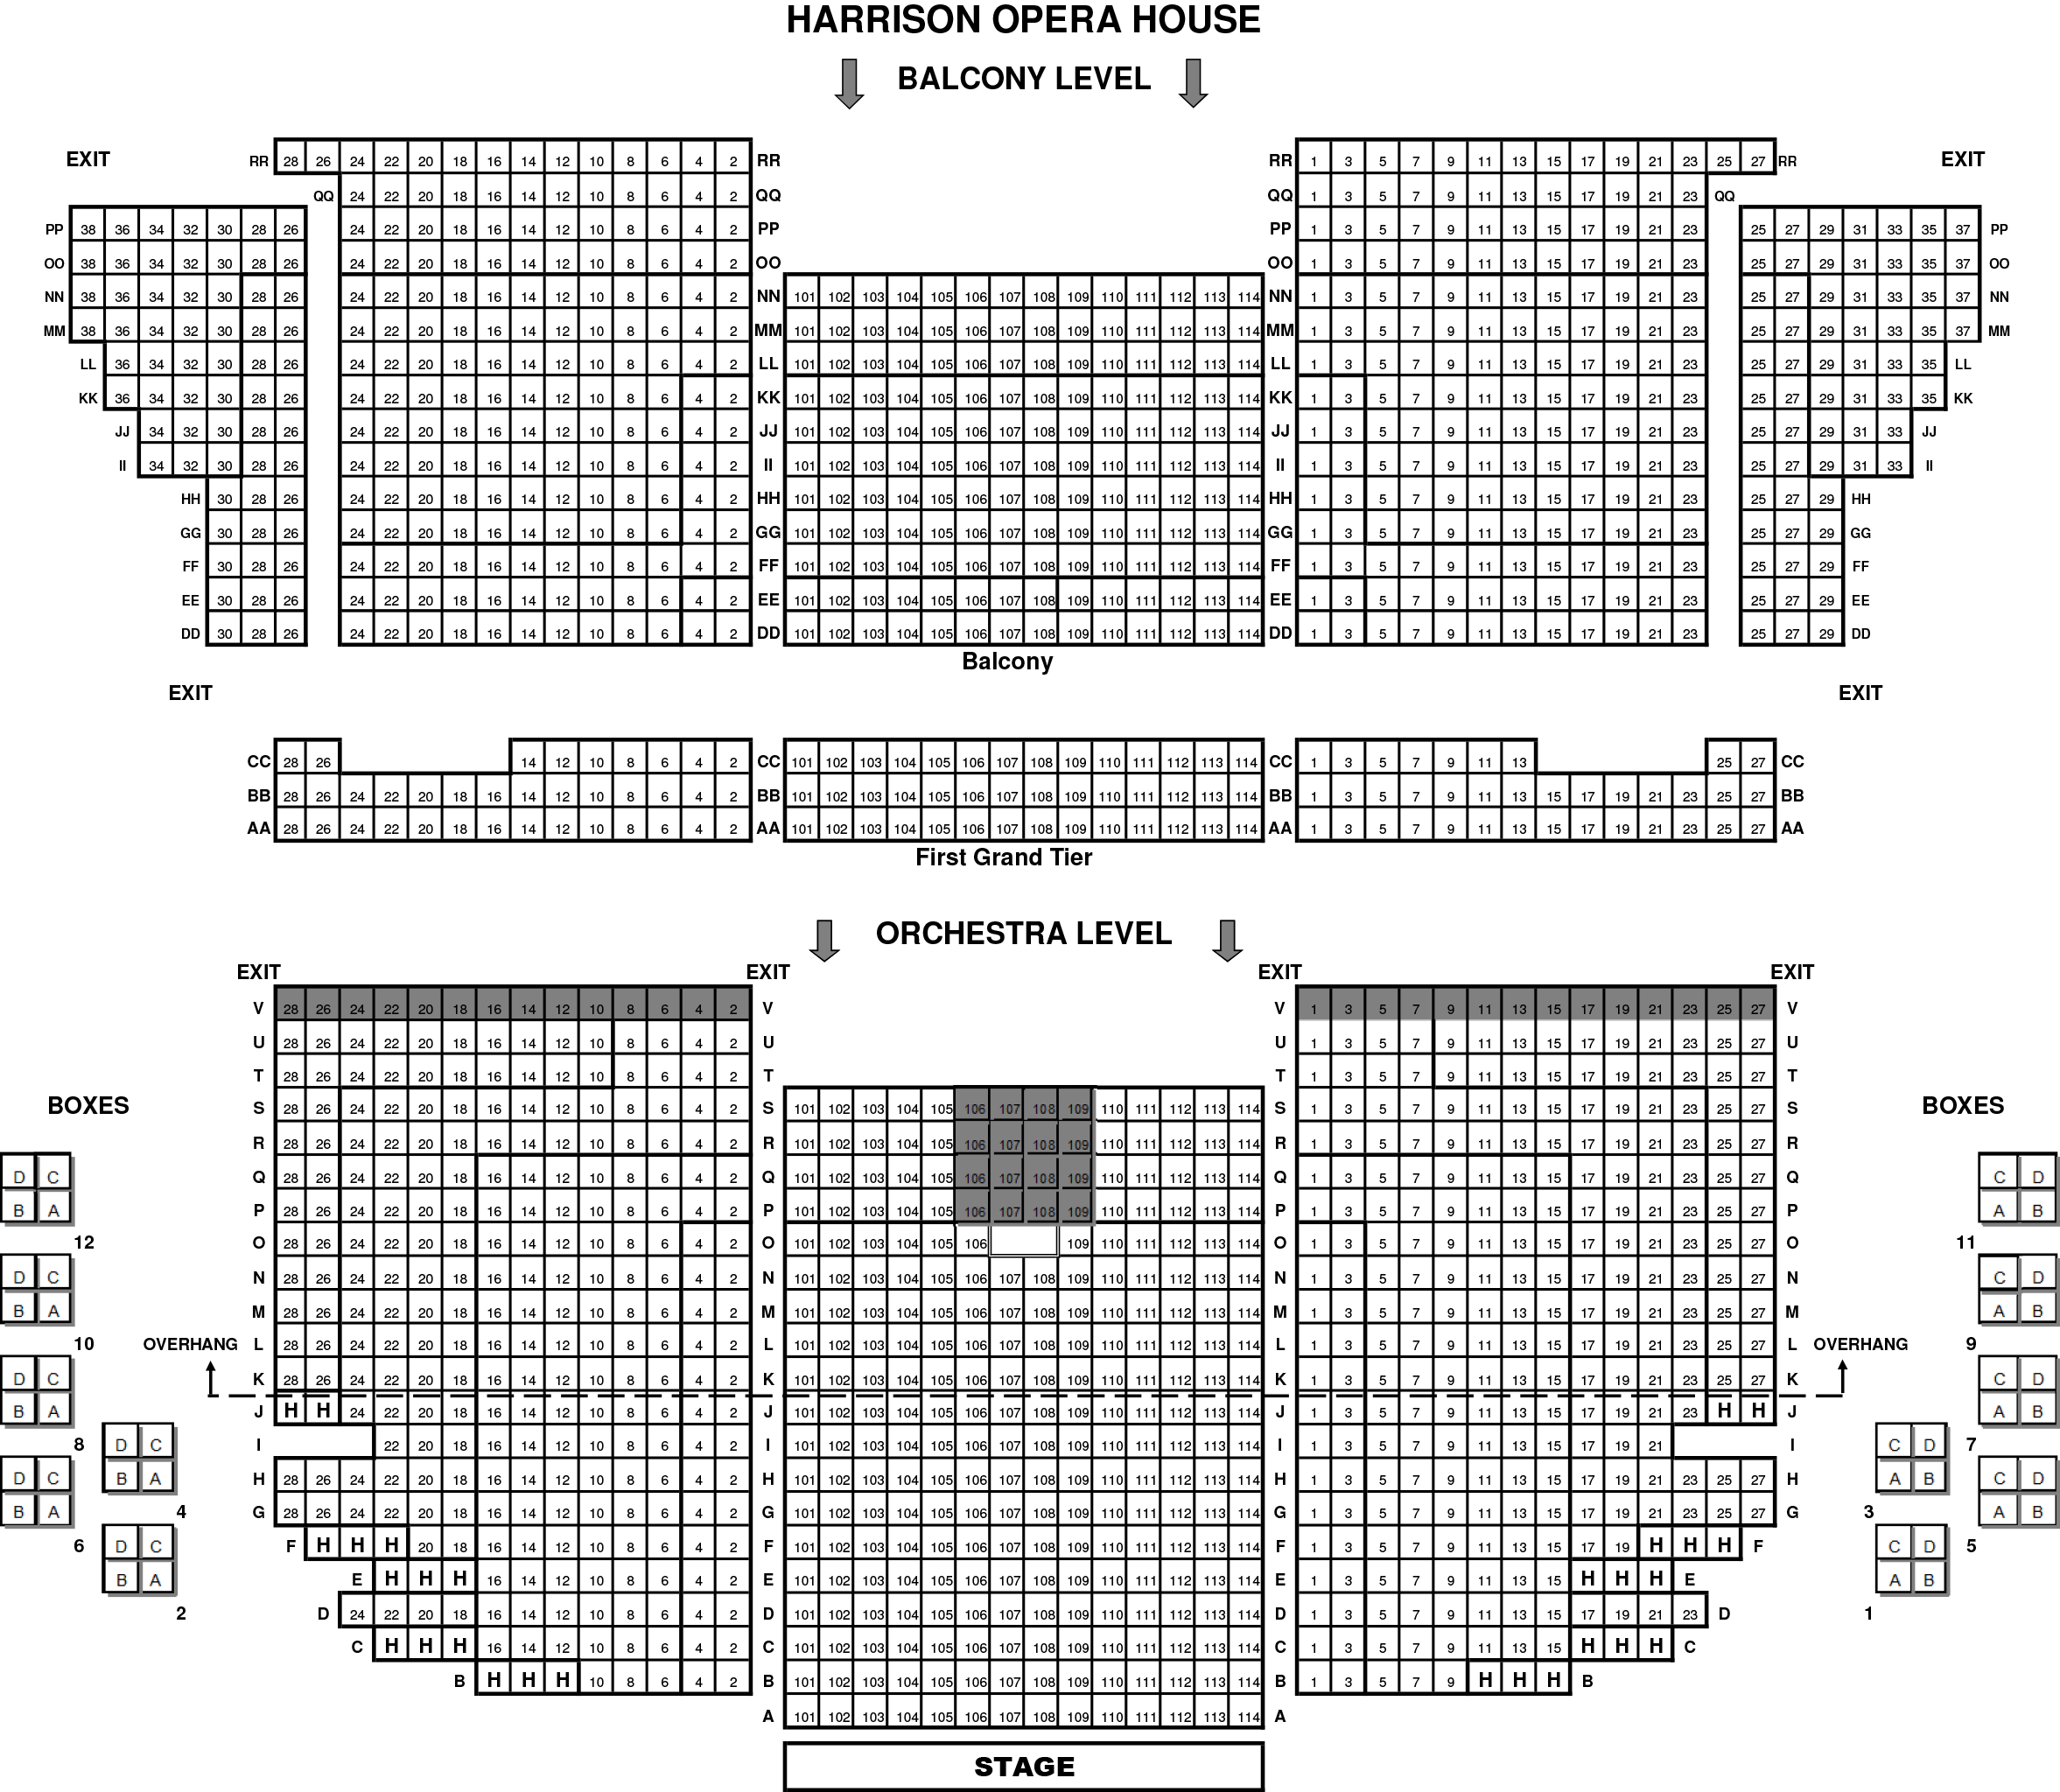 Norfolk Harrison Opera House Seating Chart